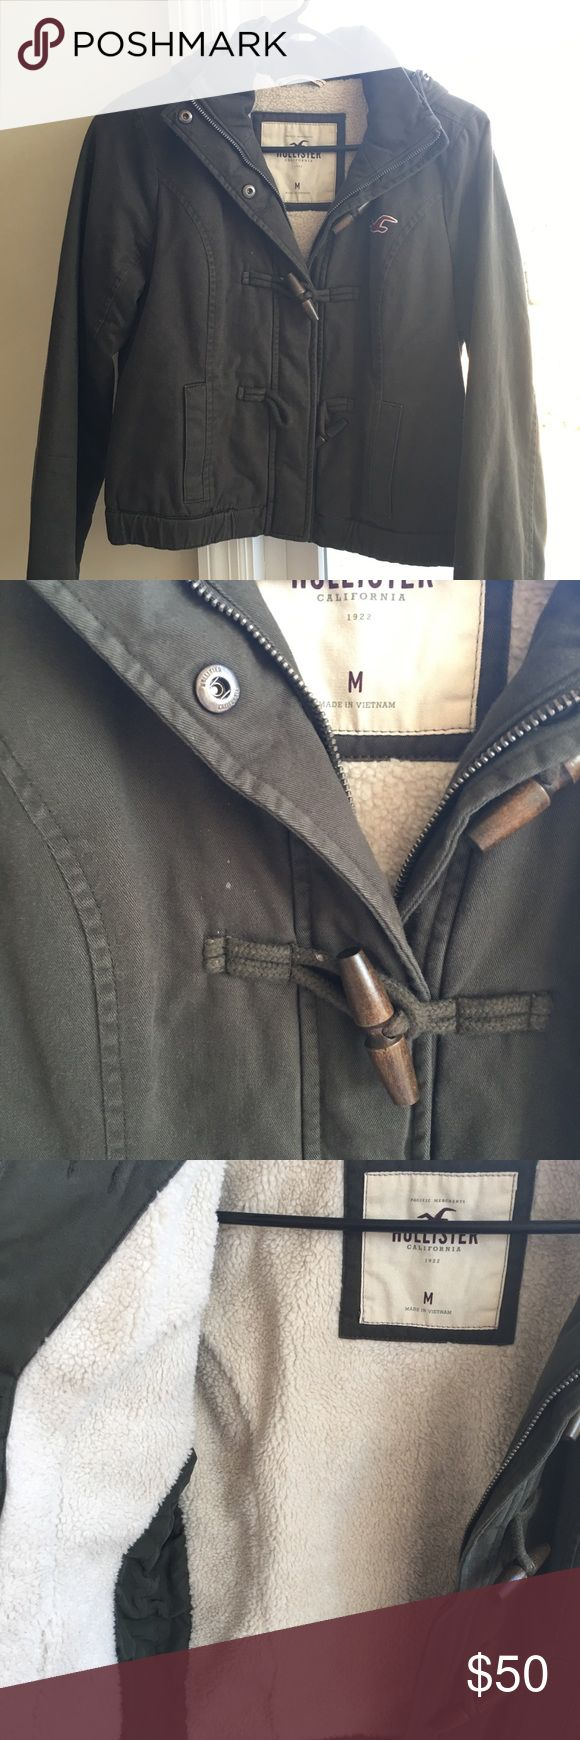 Hollister Jacket Very nice and warm jacket. Fairly new, but have small white spots on the front (shown in the second picture). Cropped. Hollister Jackets & Coats